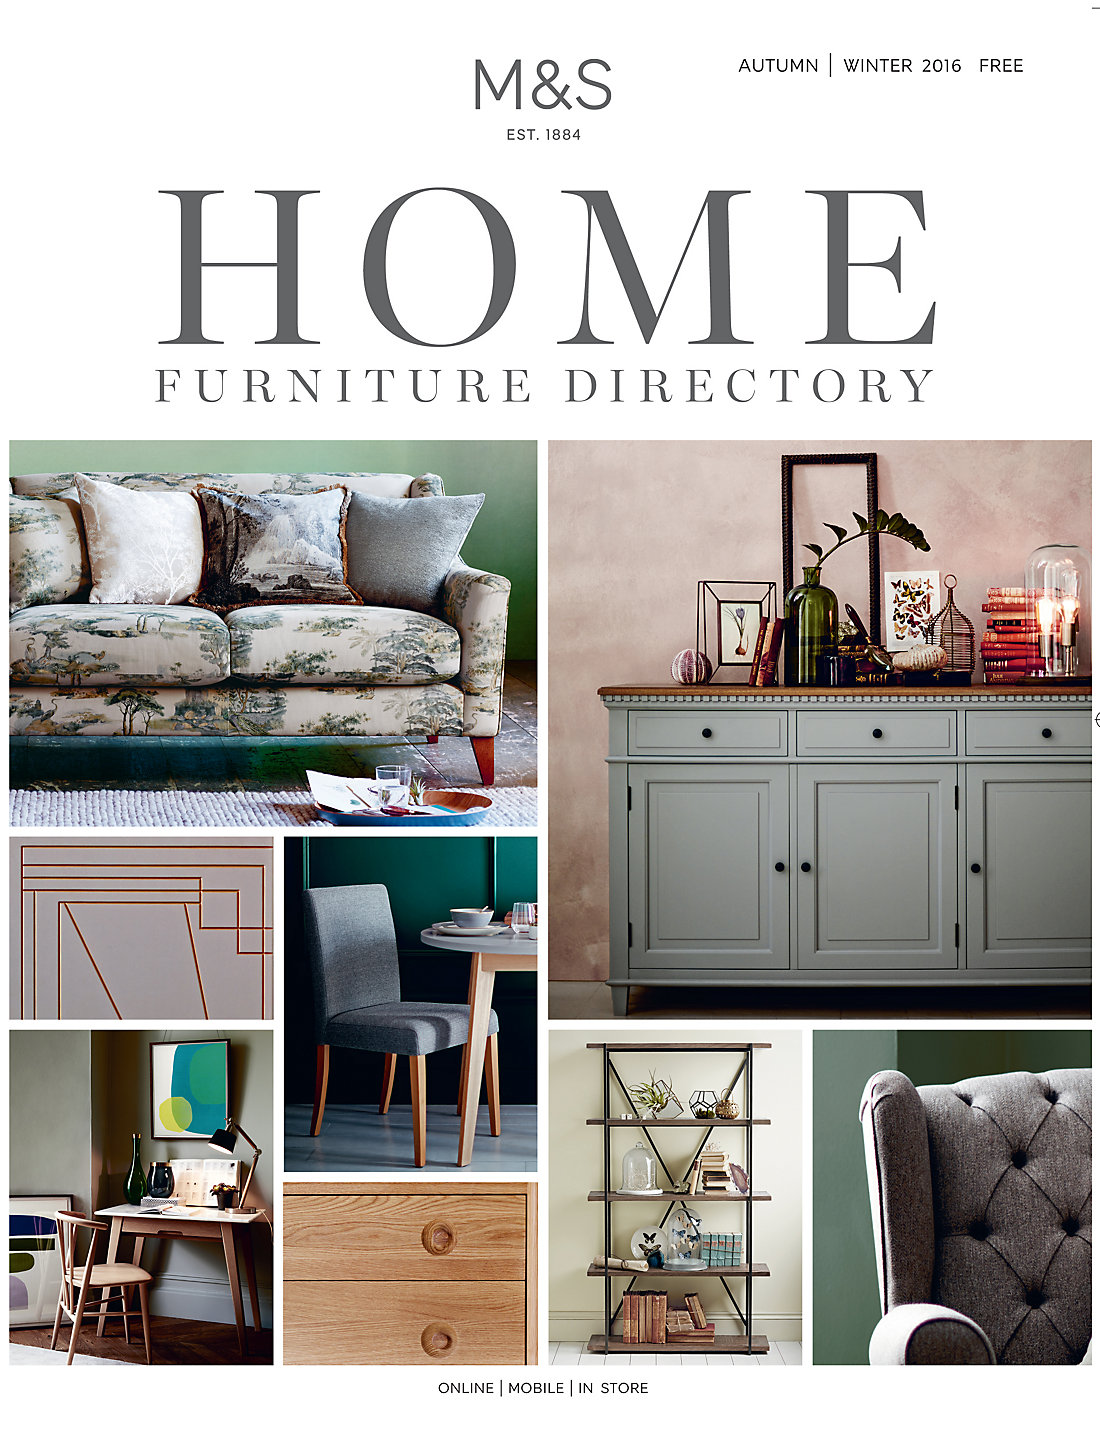 Delightful Free Furniture Directory  Autumn / Winter 2016